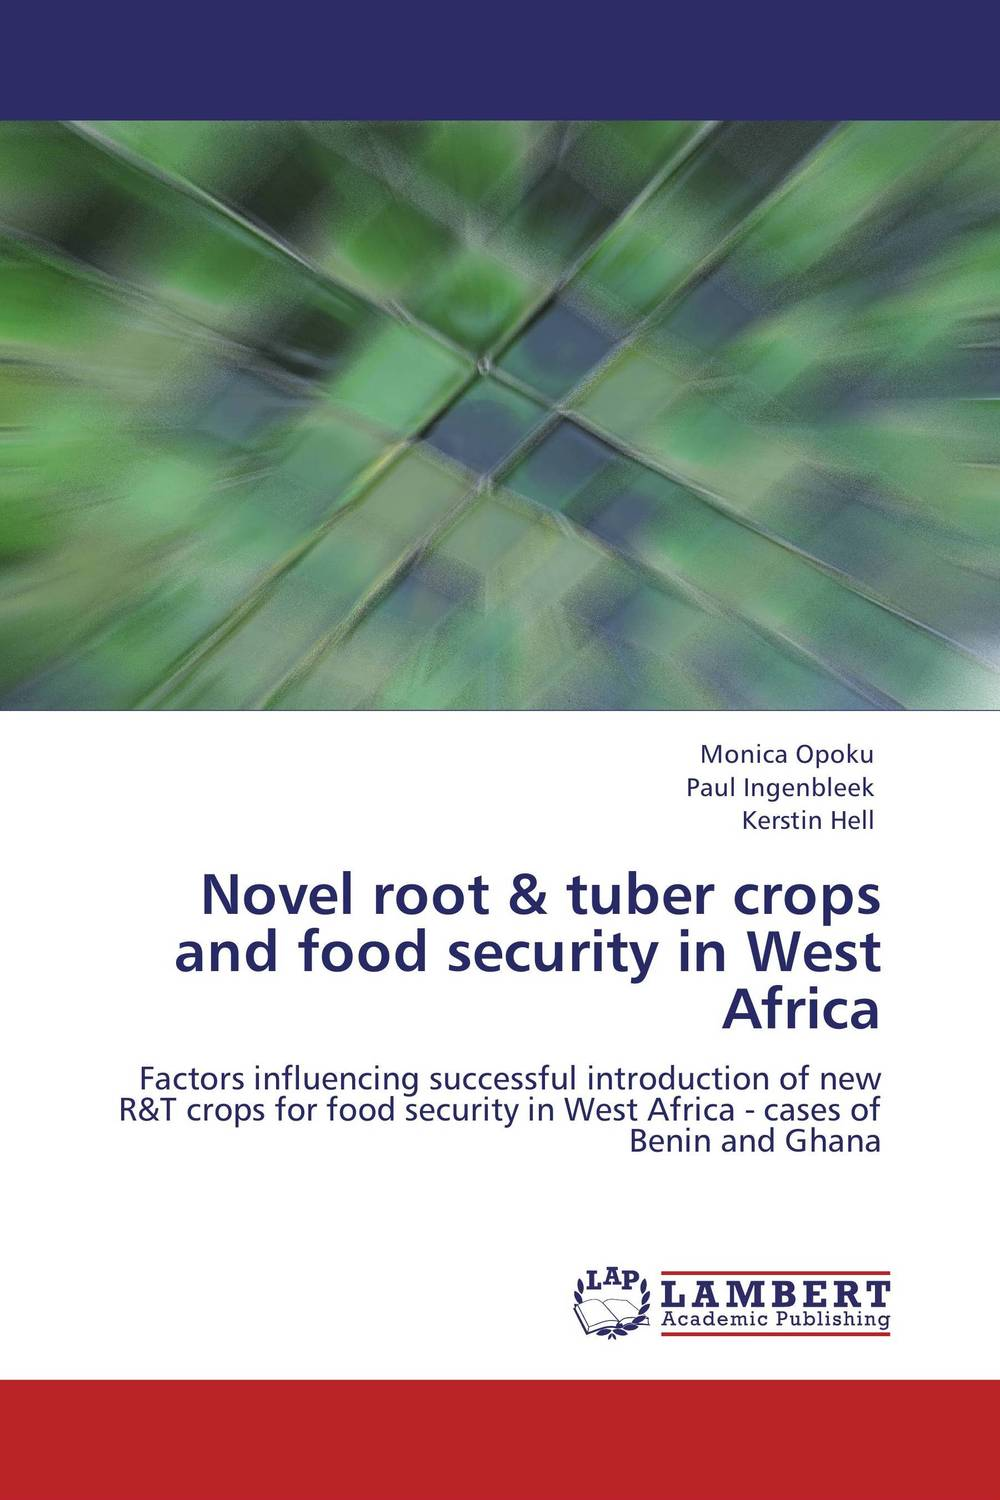 Novel root & tuber crops and food security in West Africa viruses infecting yam in ghana togo and benin in west africa